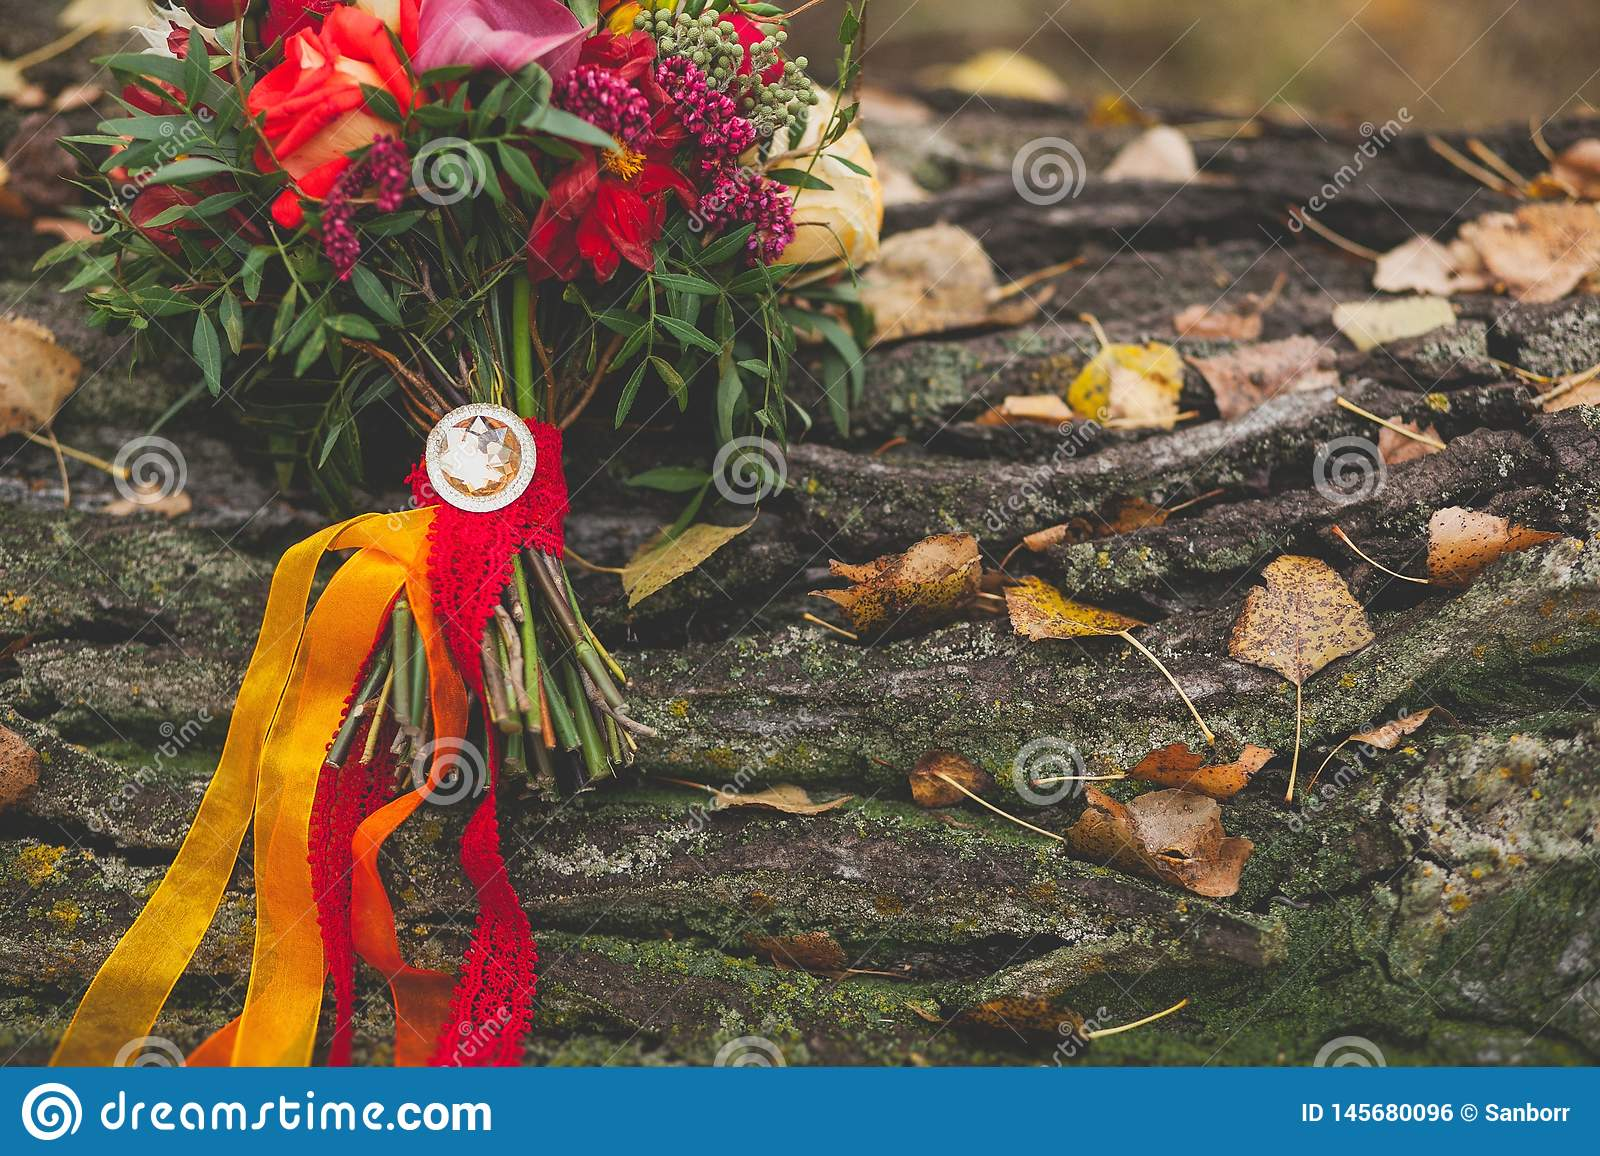 Wedding autumn bouquet of the bride on the tree. Beautifully decorated with satin ribbons and jewelry bouquet of several kinds,